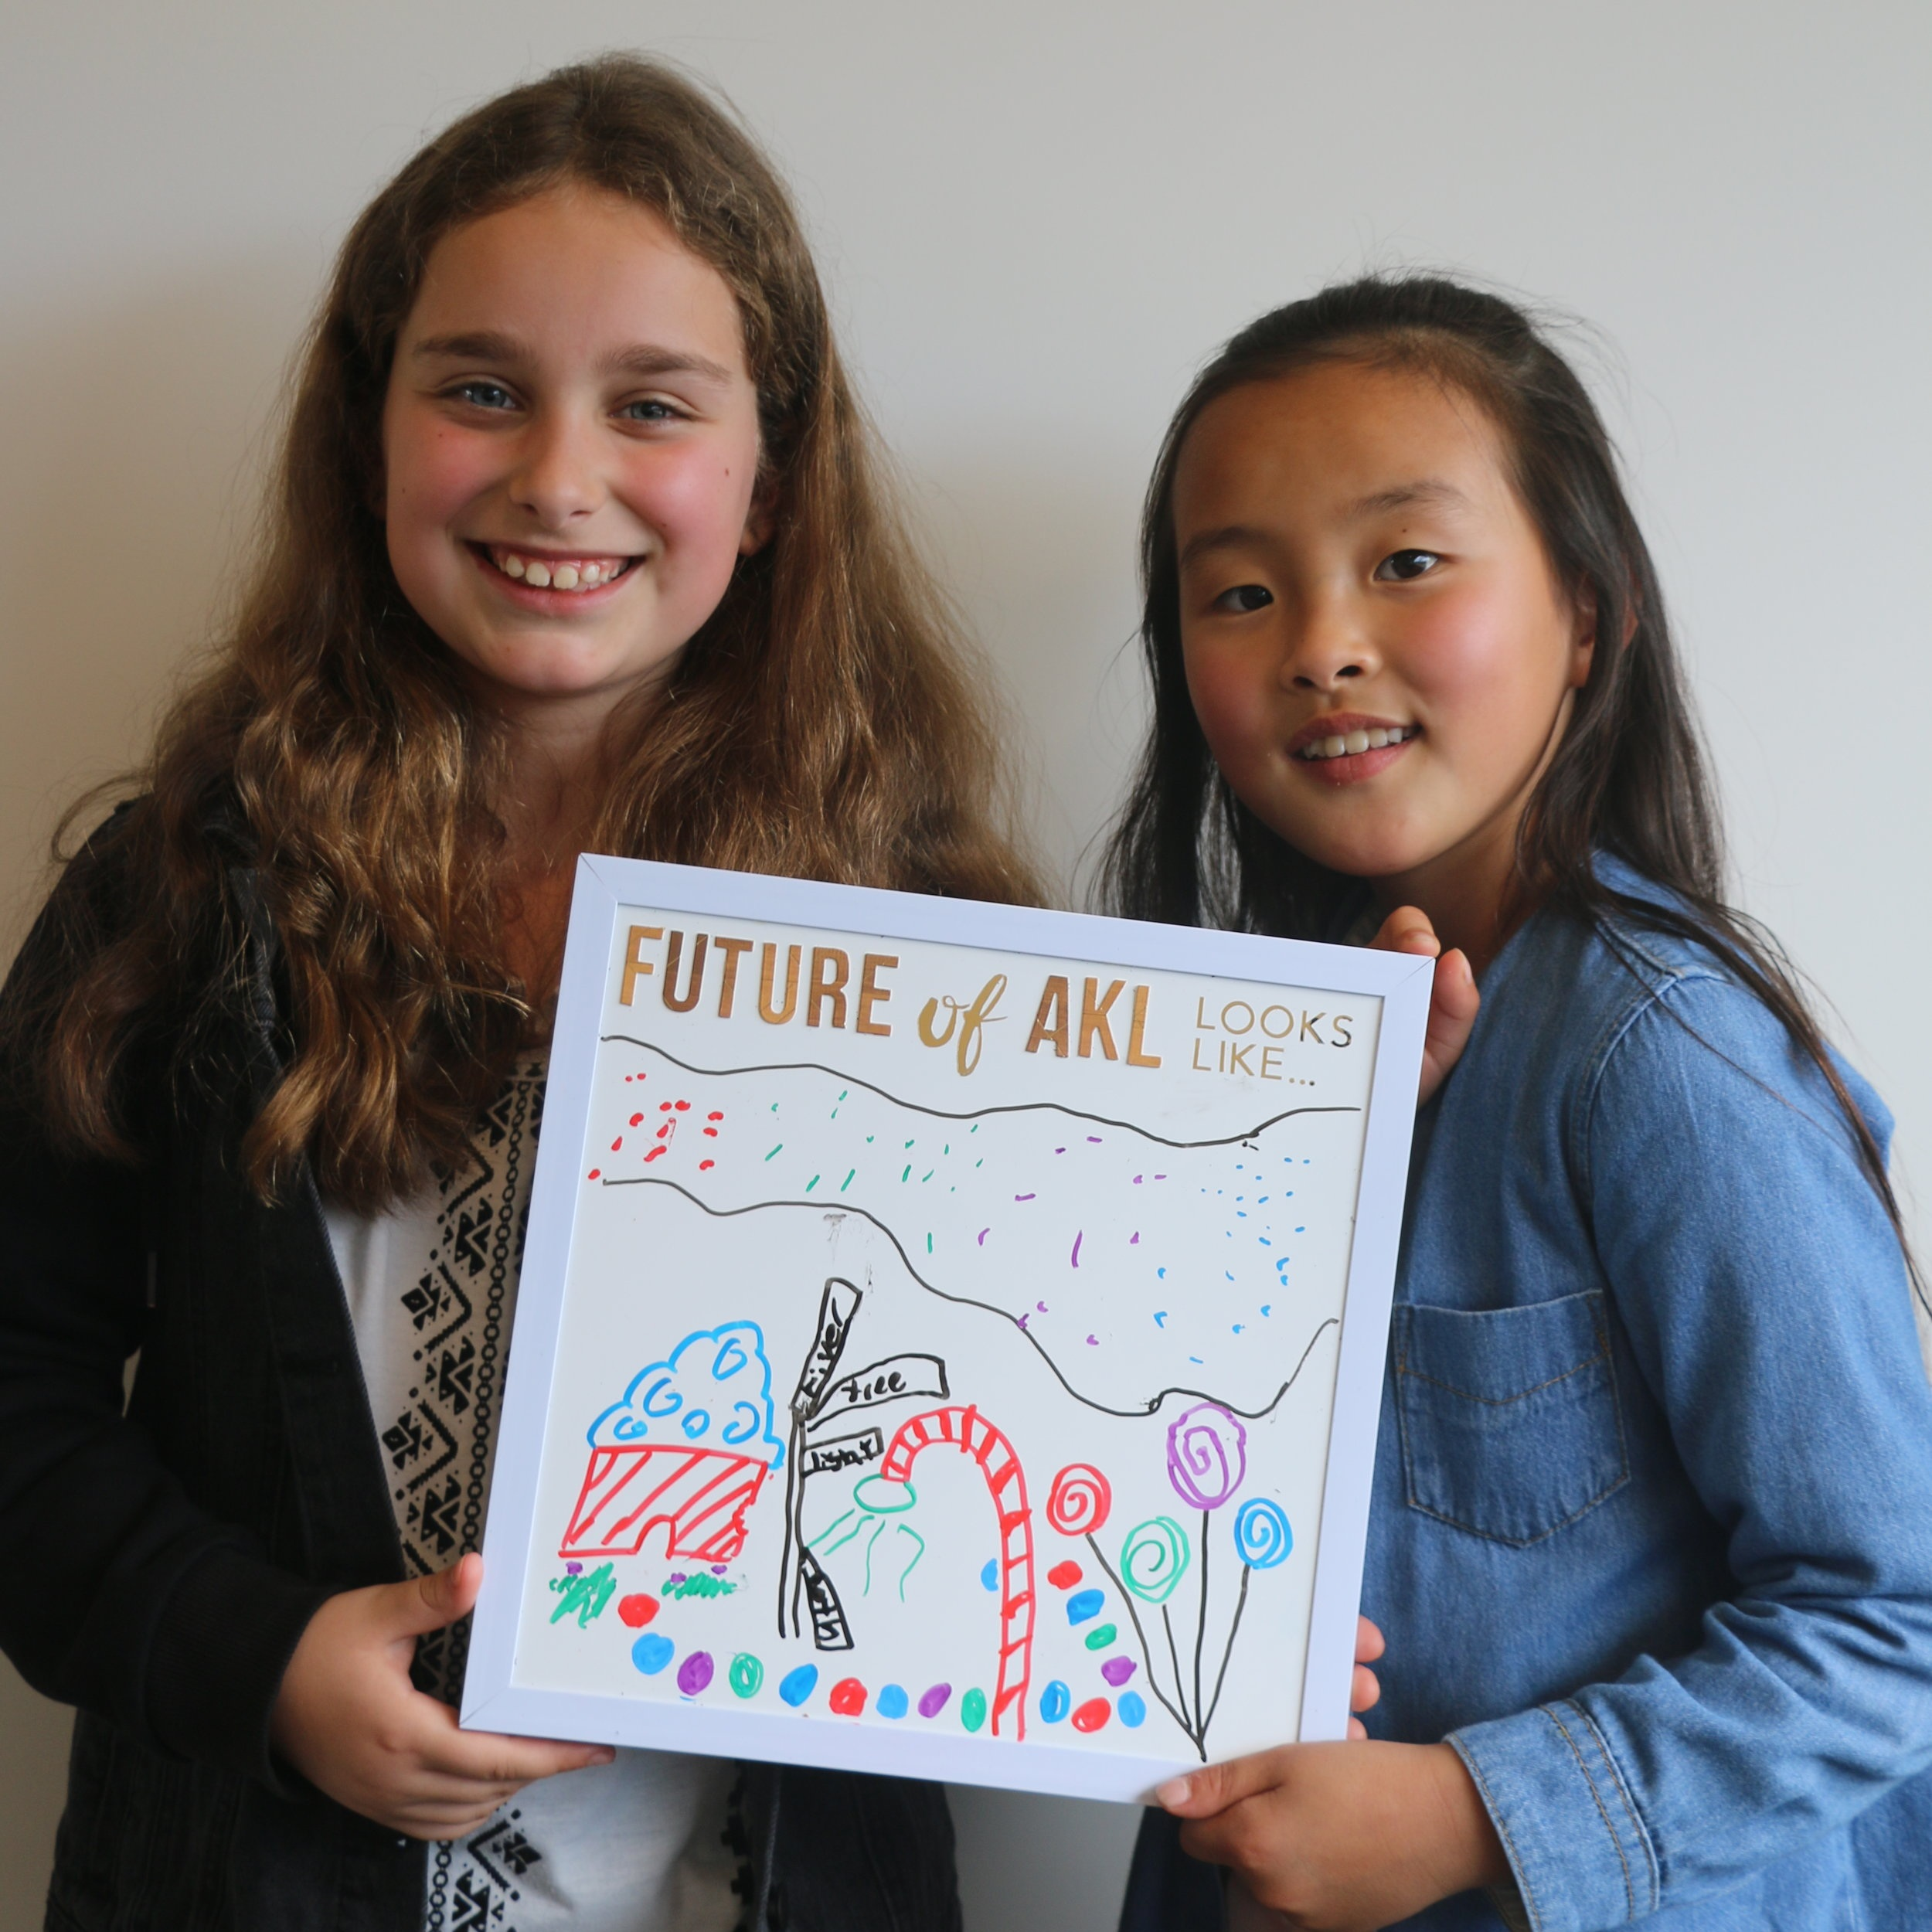 #FutureOfAKL - Use #FutureOfAKL on Instagram » Get featured on our website!